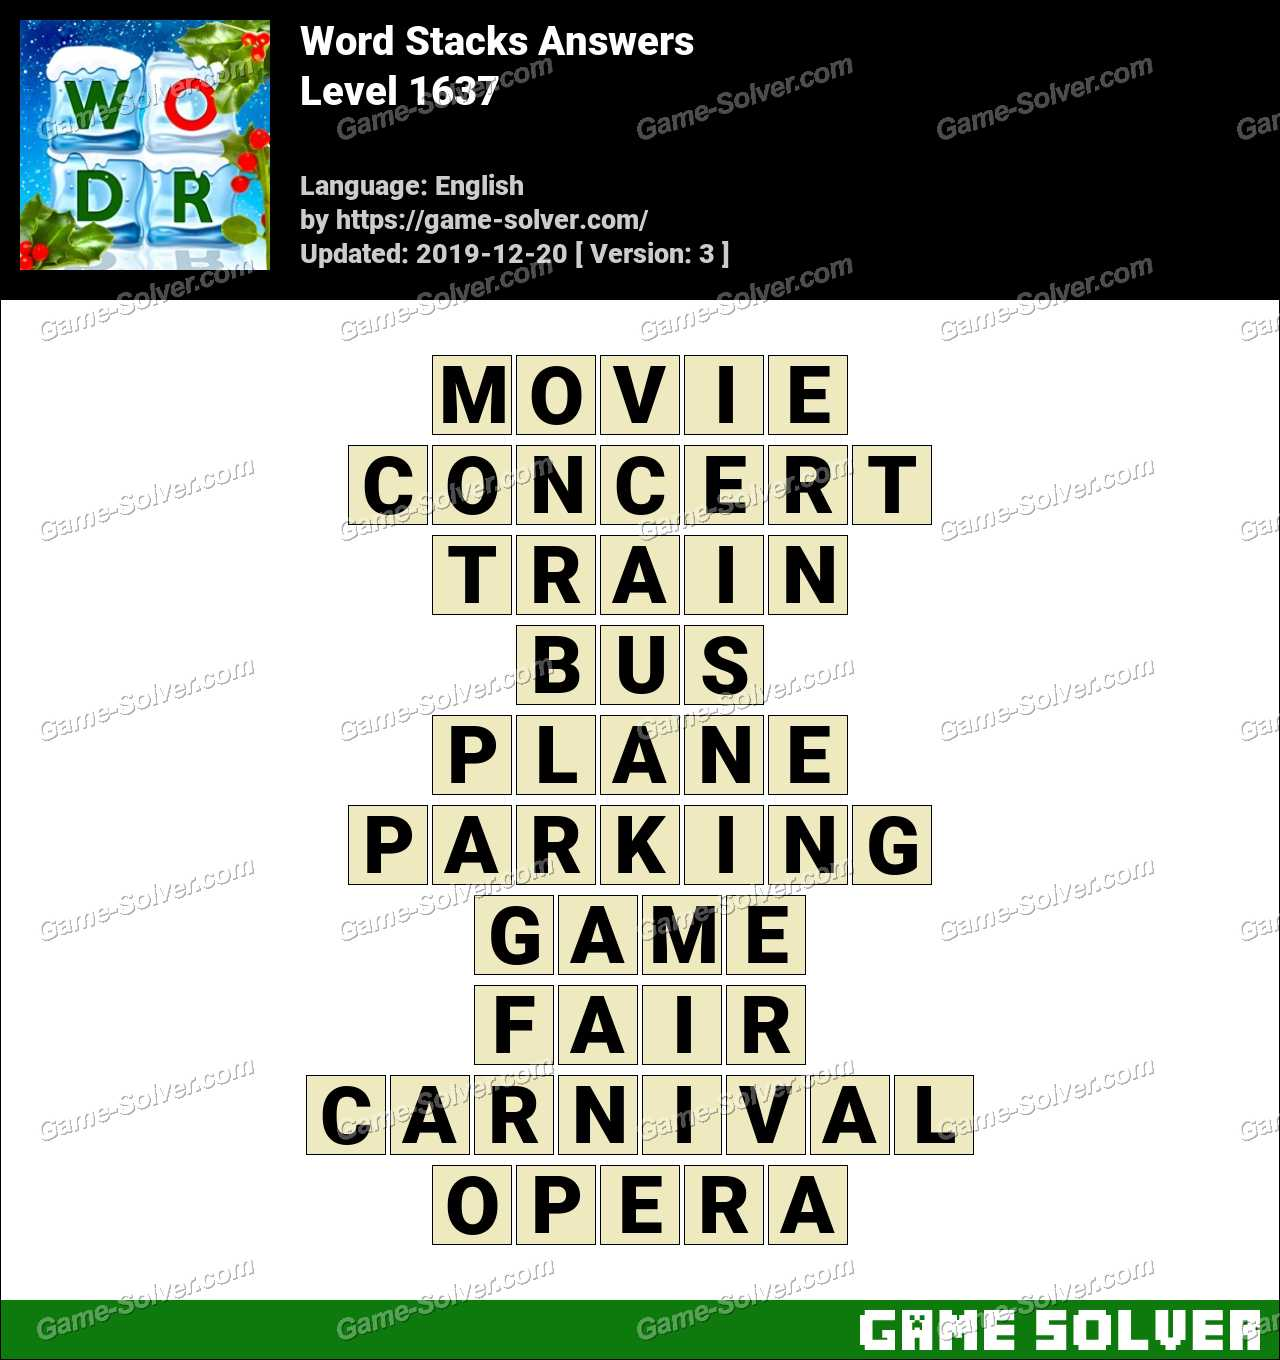 Word Stacks Level 1637 Answers